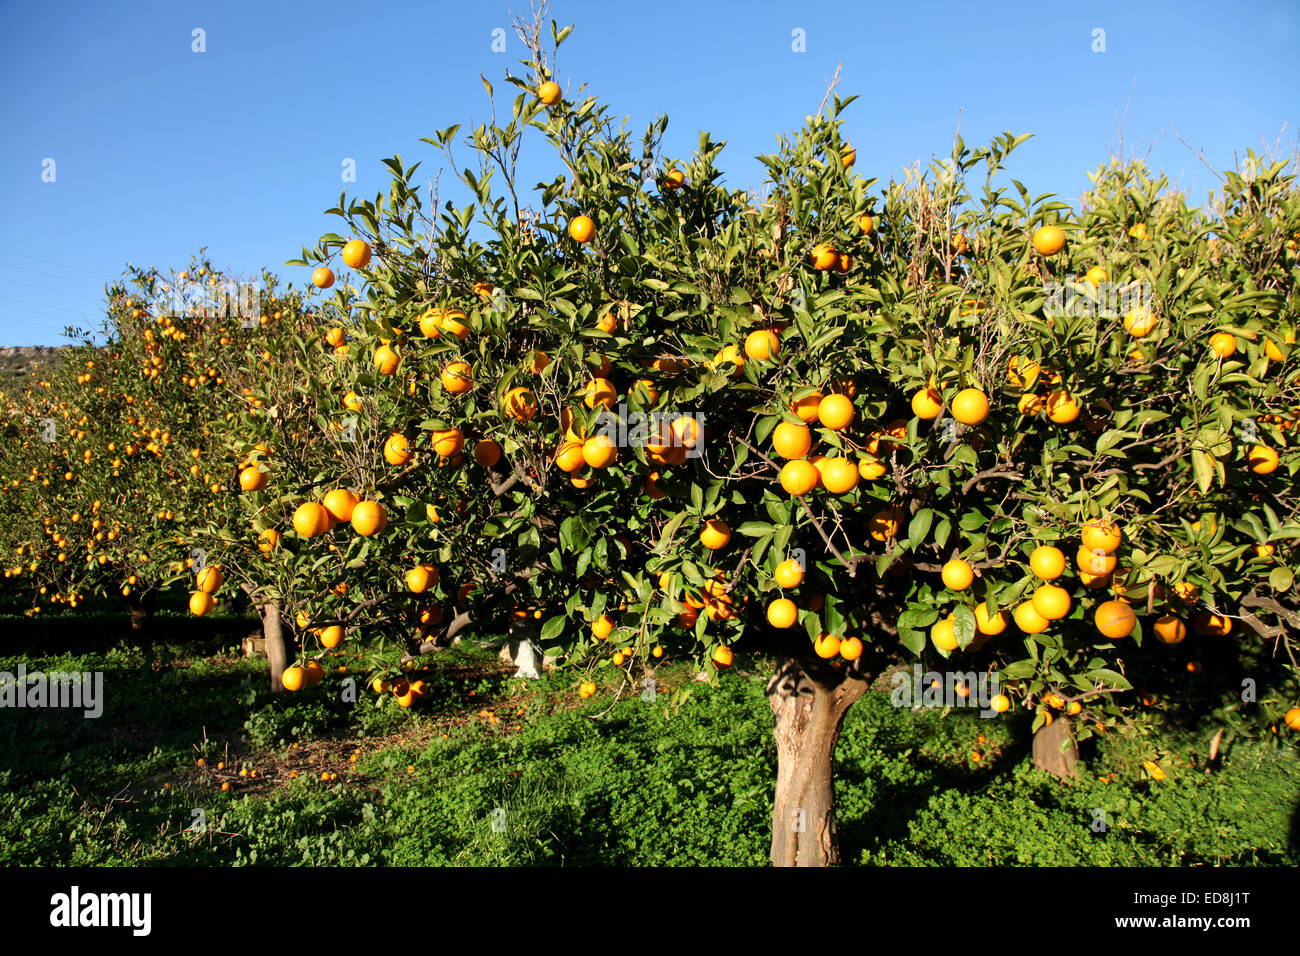 A forest of Oranges and all ready to harvest for Christmas. A typical Greek scene in winter - Stock Image